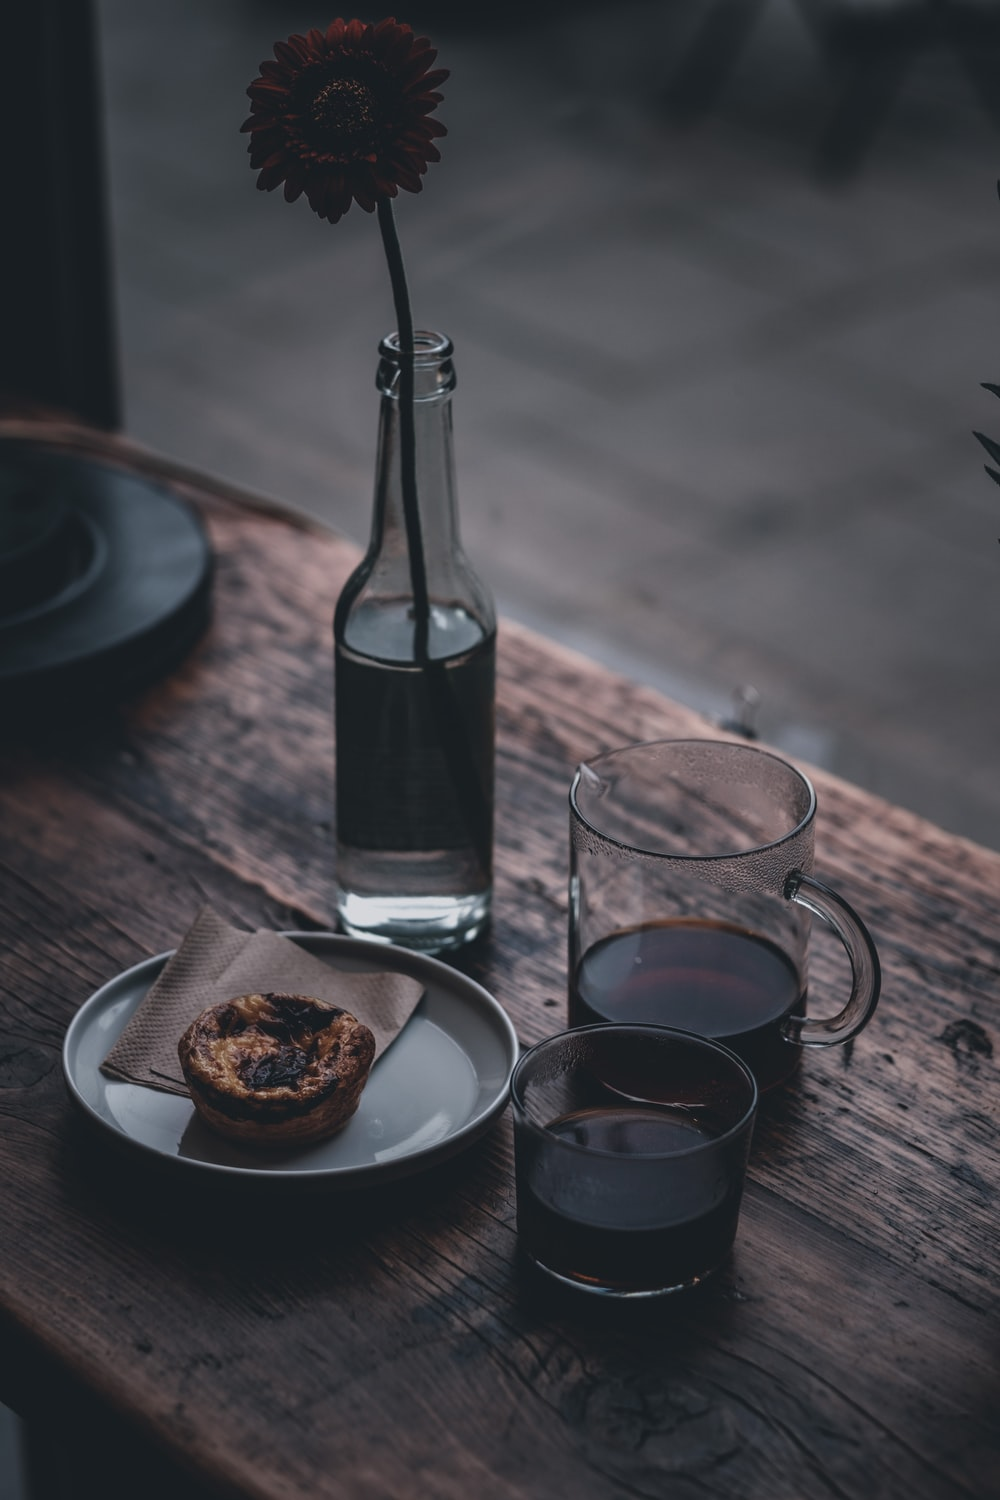 clear glass bottle beside clear drinking glass on brown wooden table